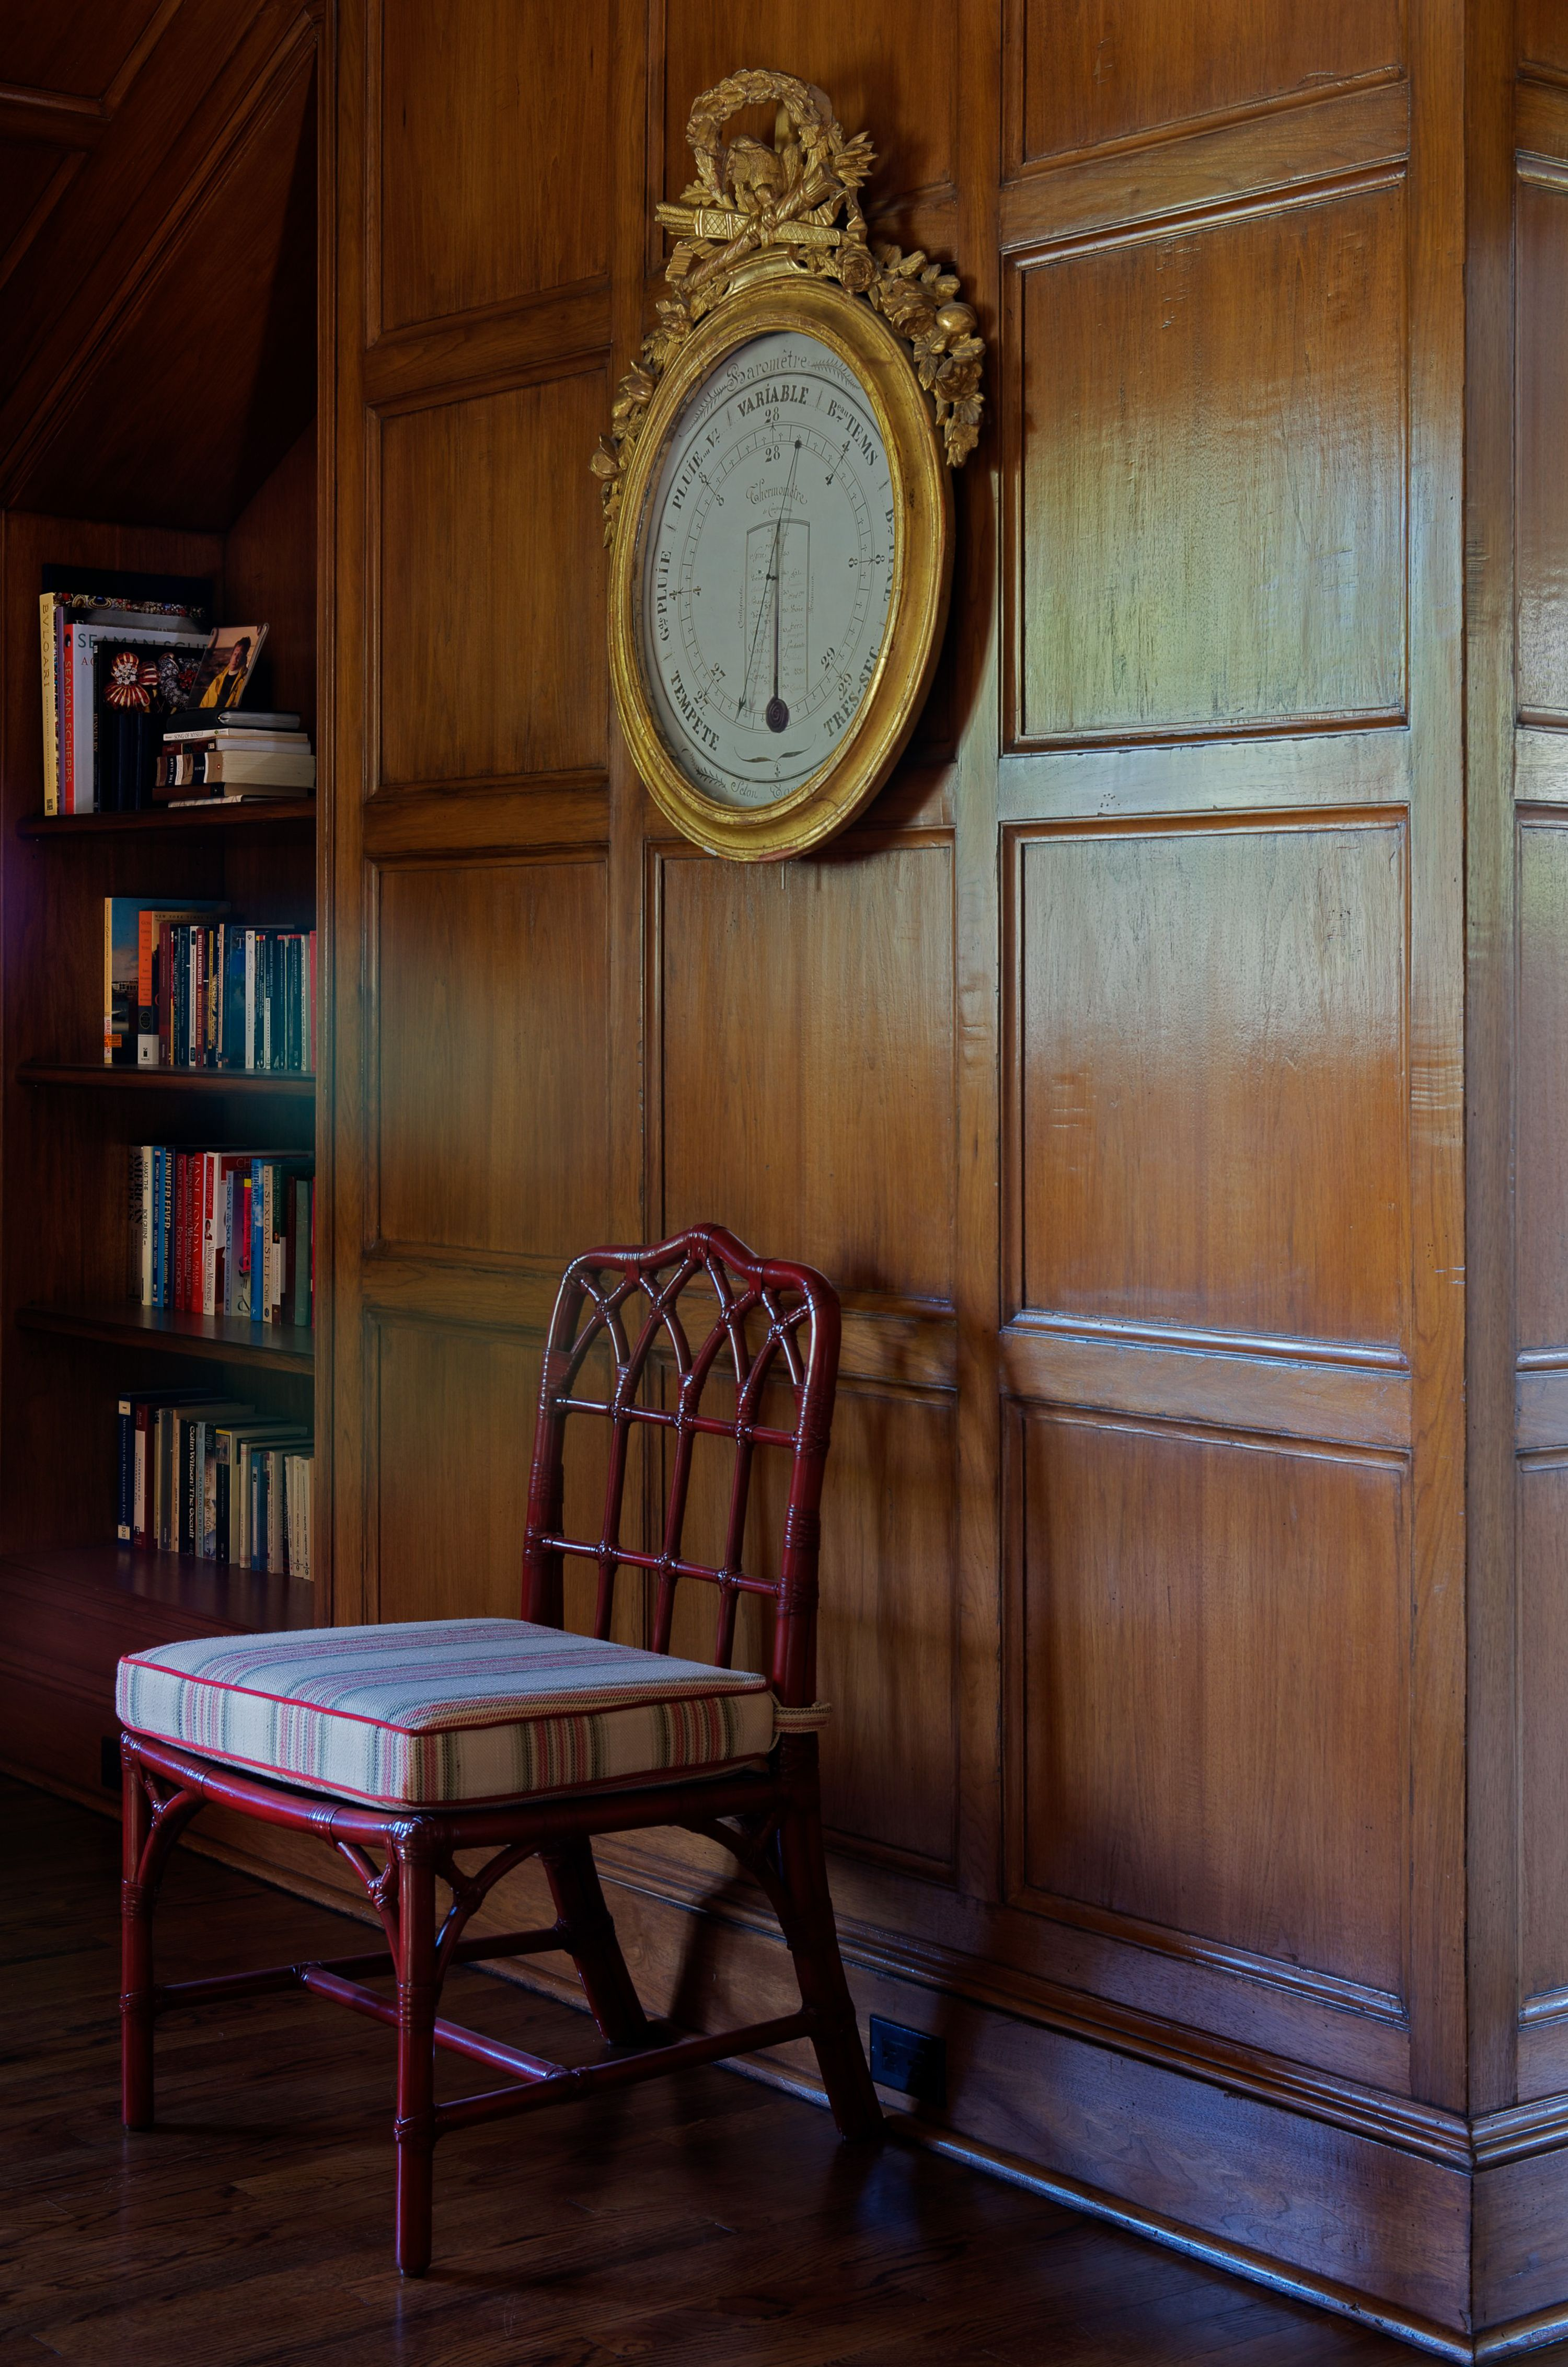 English Paneled Room: New Canaan, Ct Photographed By Jane Beiles